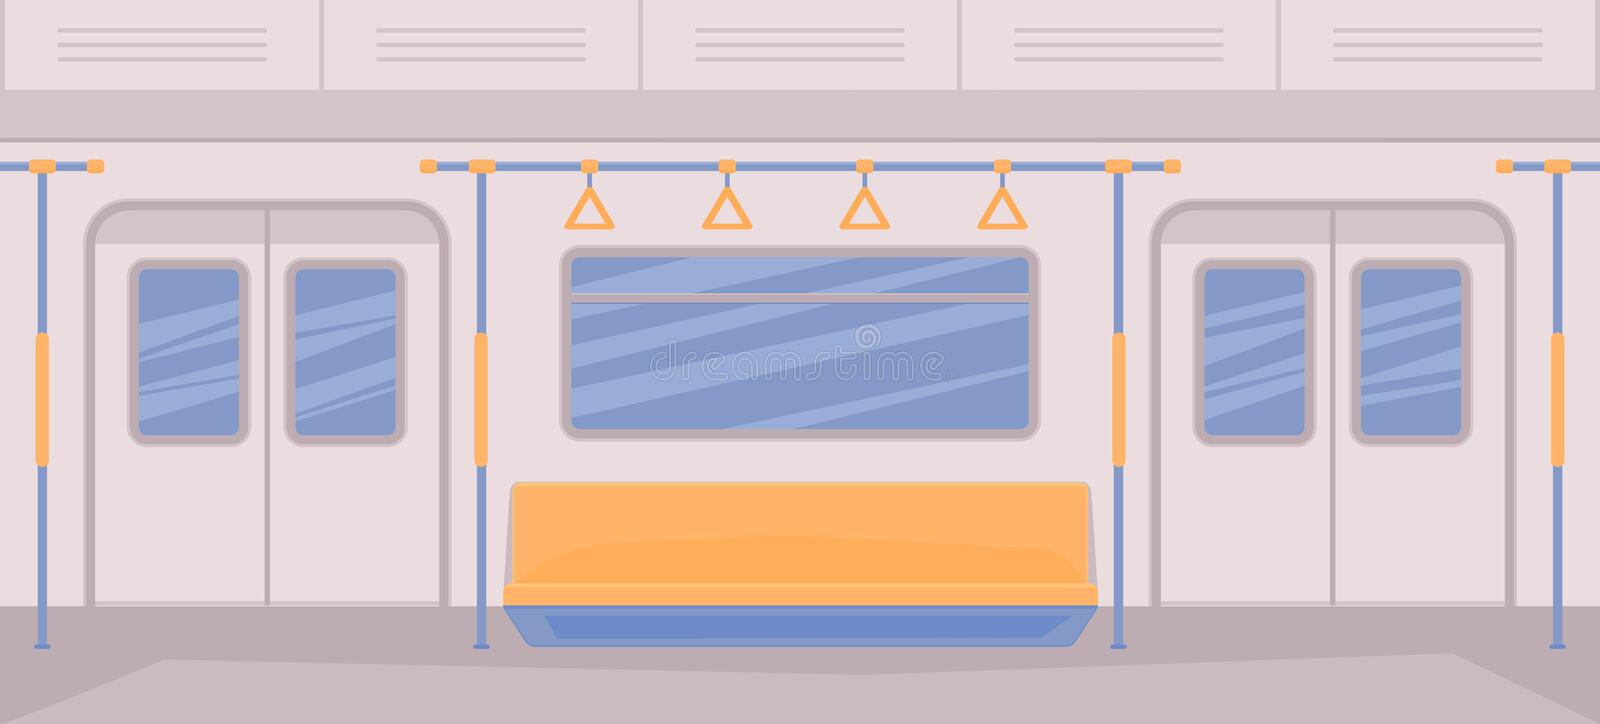 Subway train car inside. Interior with seats, a door for entrance and exit, handrails, window. royalty free illustration